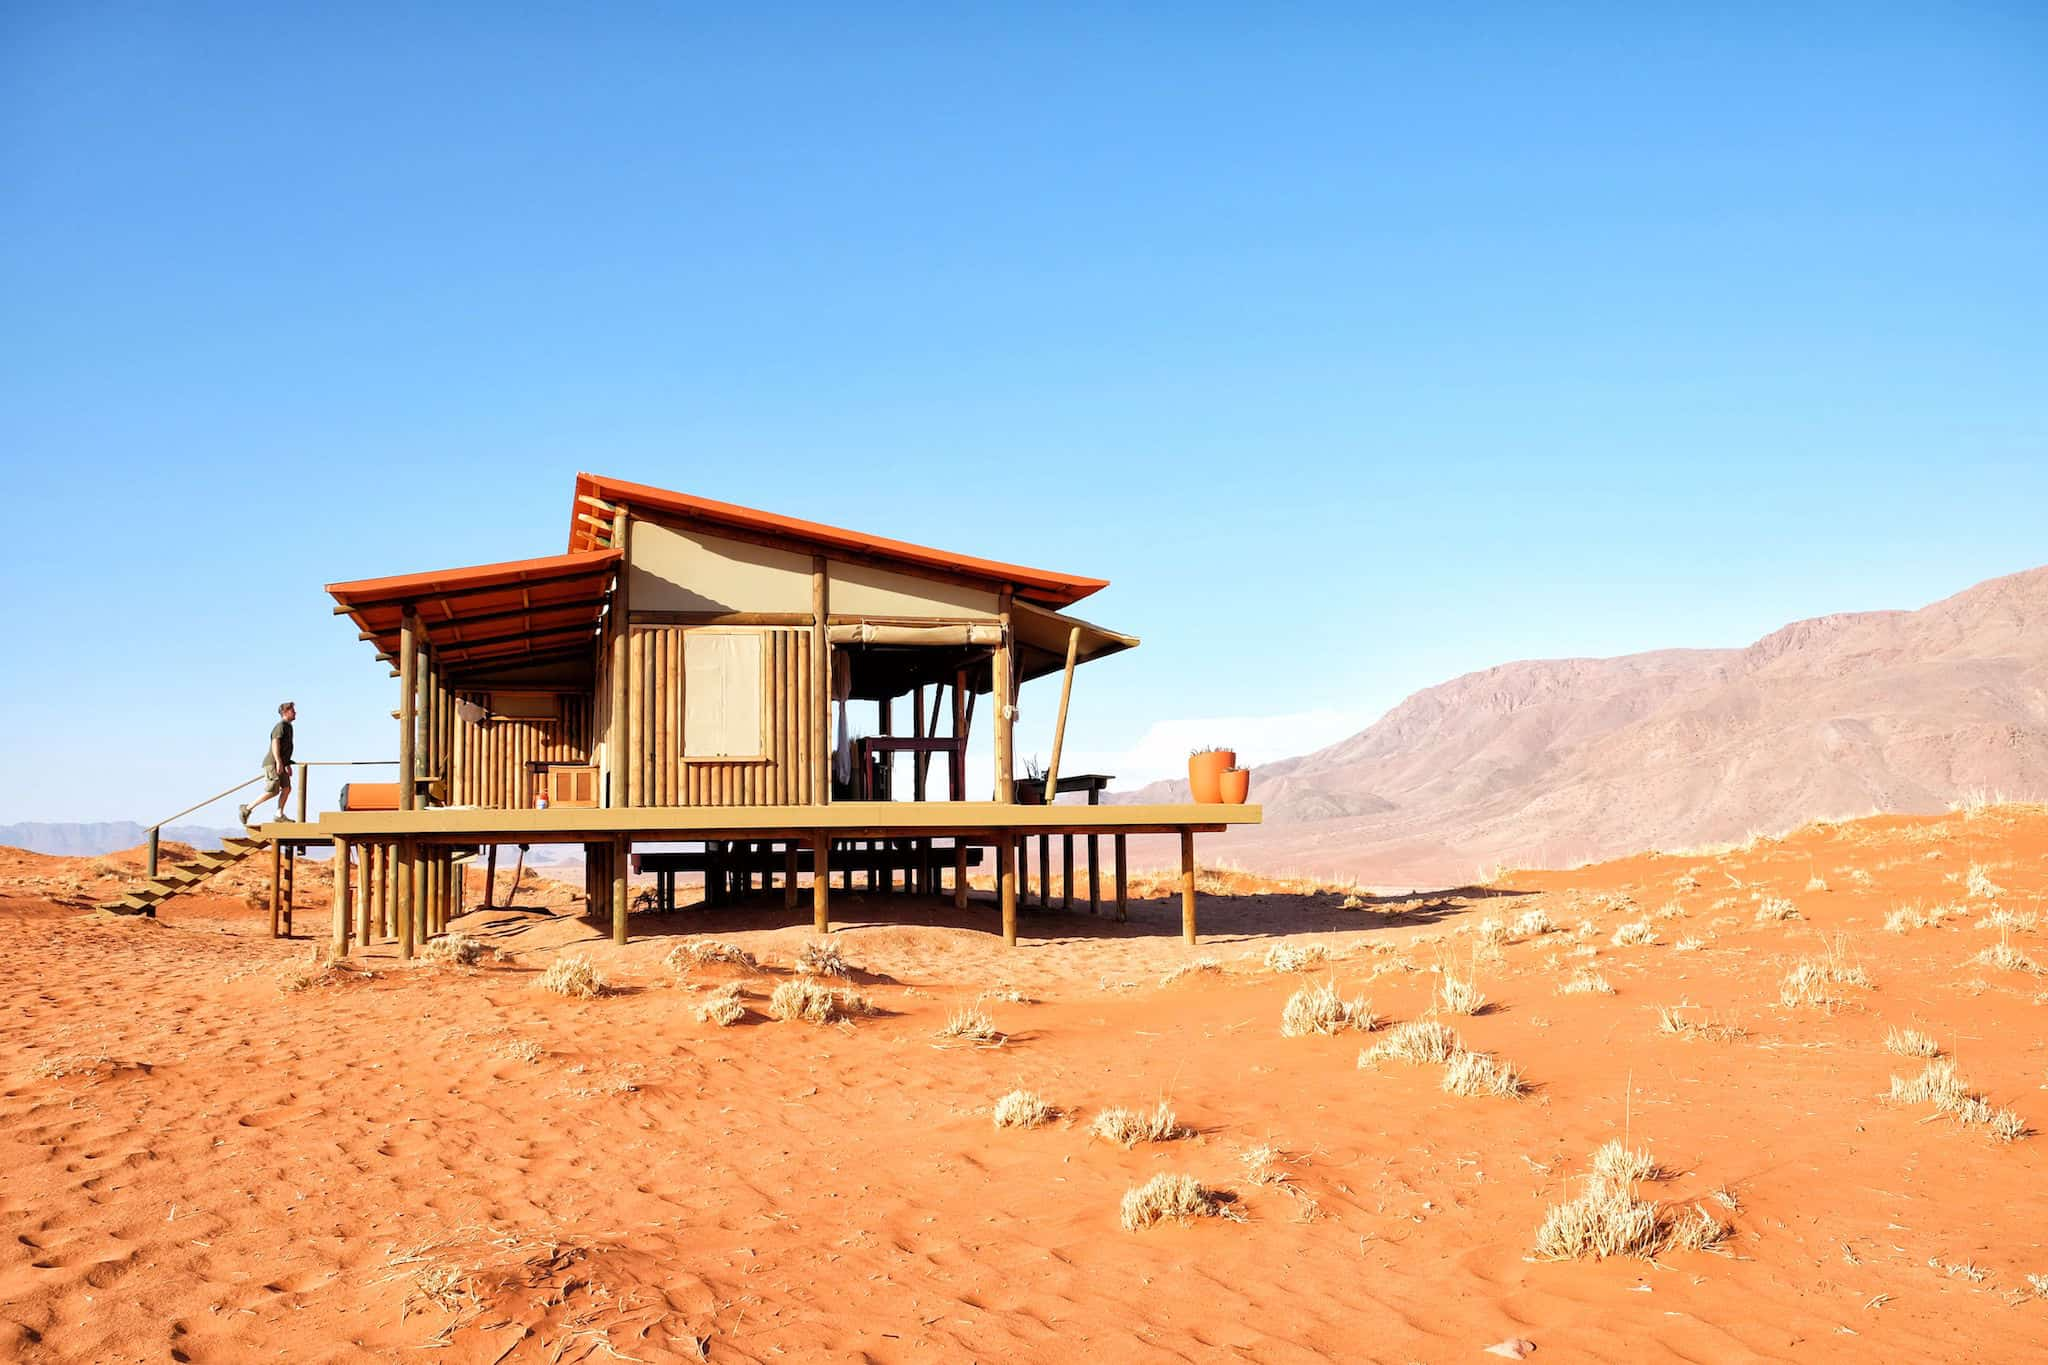 Wolwedans Dune Lodge in Namibia